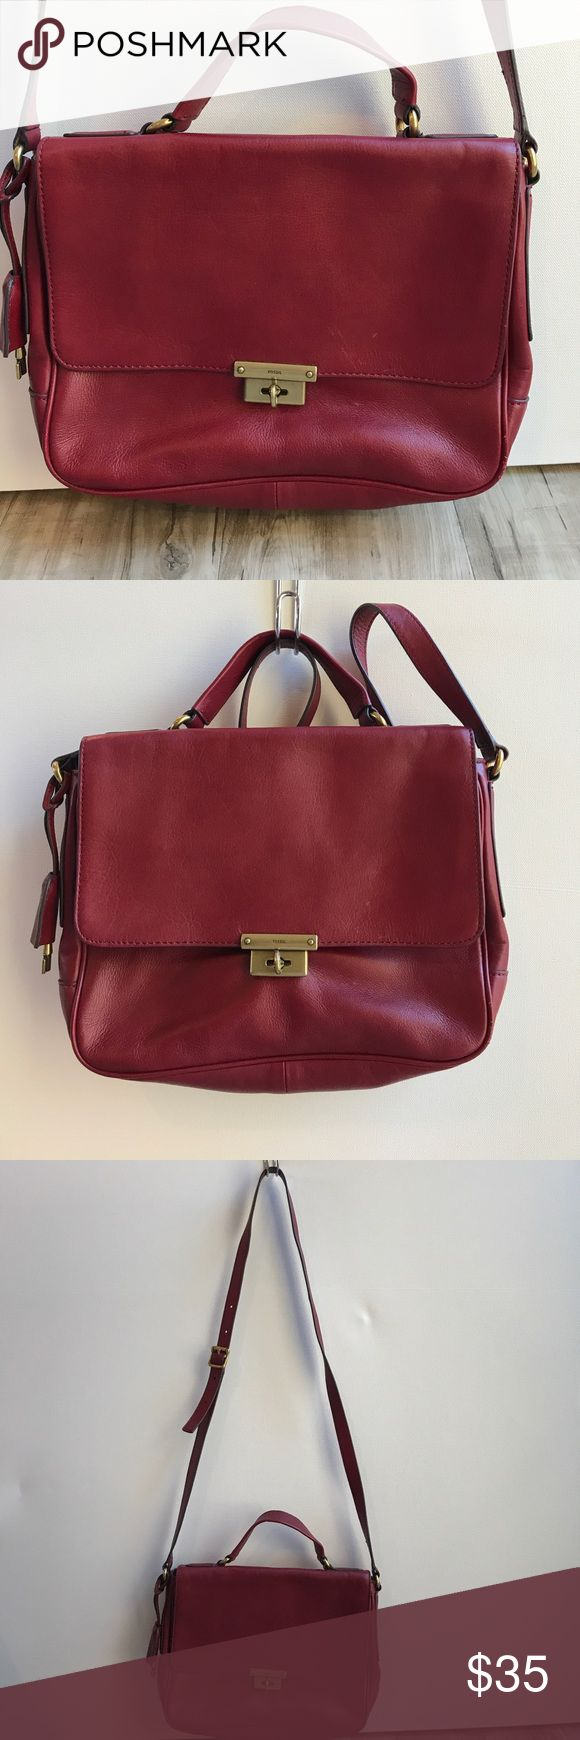 Fossil cross body in berry red Cute square Fossil crossbody bag. Handle and strap. 9x12x2. Boxy shape. Credit card slots in one pocket, multiple interior pockets. Back slide pocket. Great for a small tablet like the iPad mini. Used once. Fossil Bags Crossbody Bags